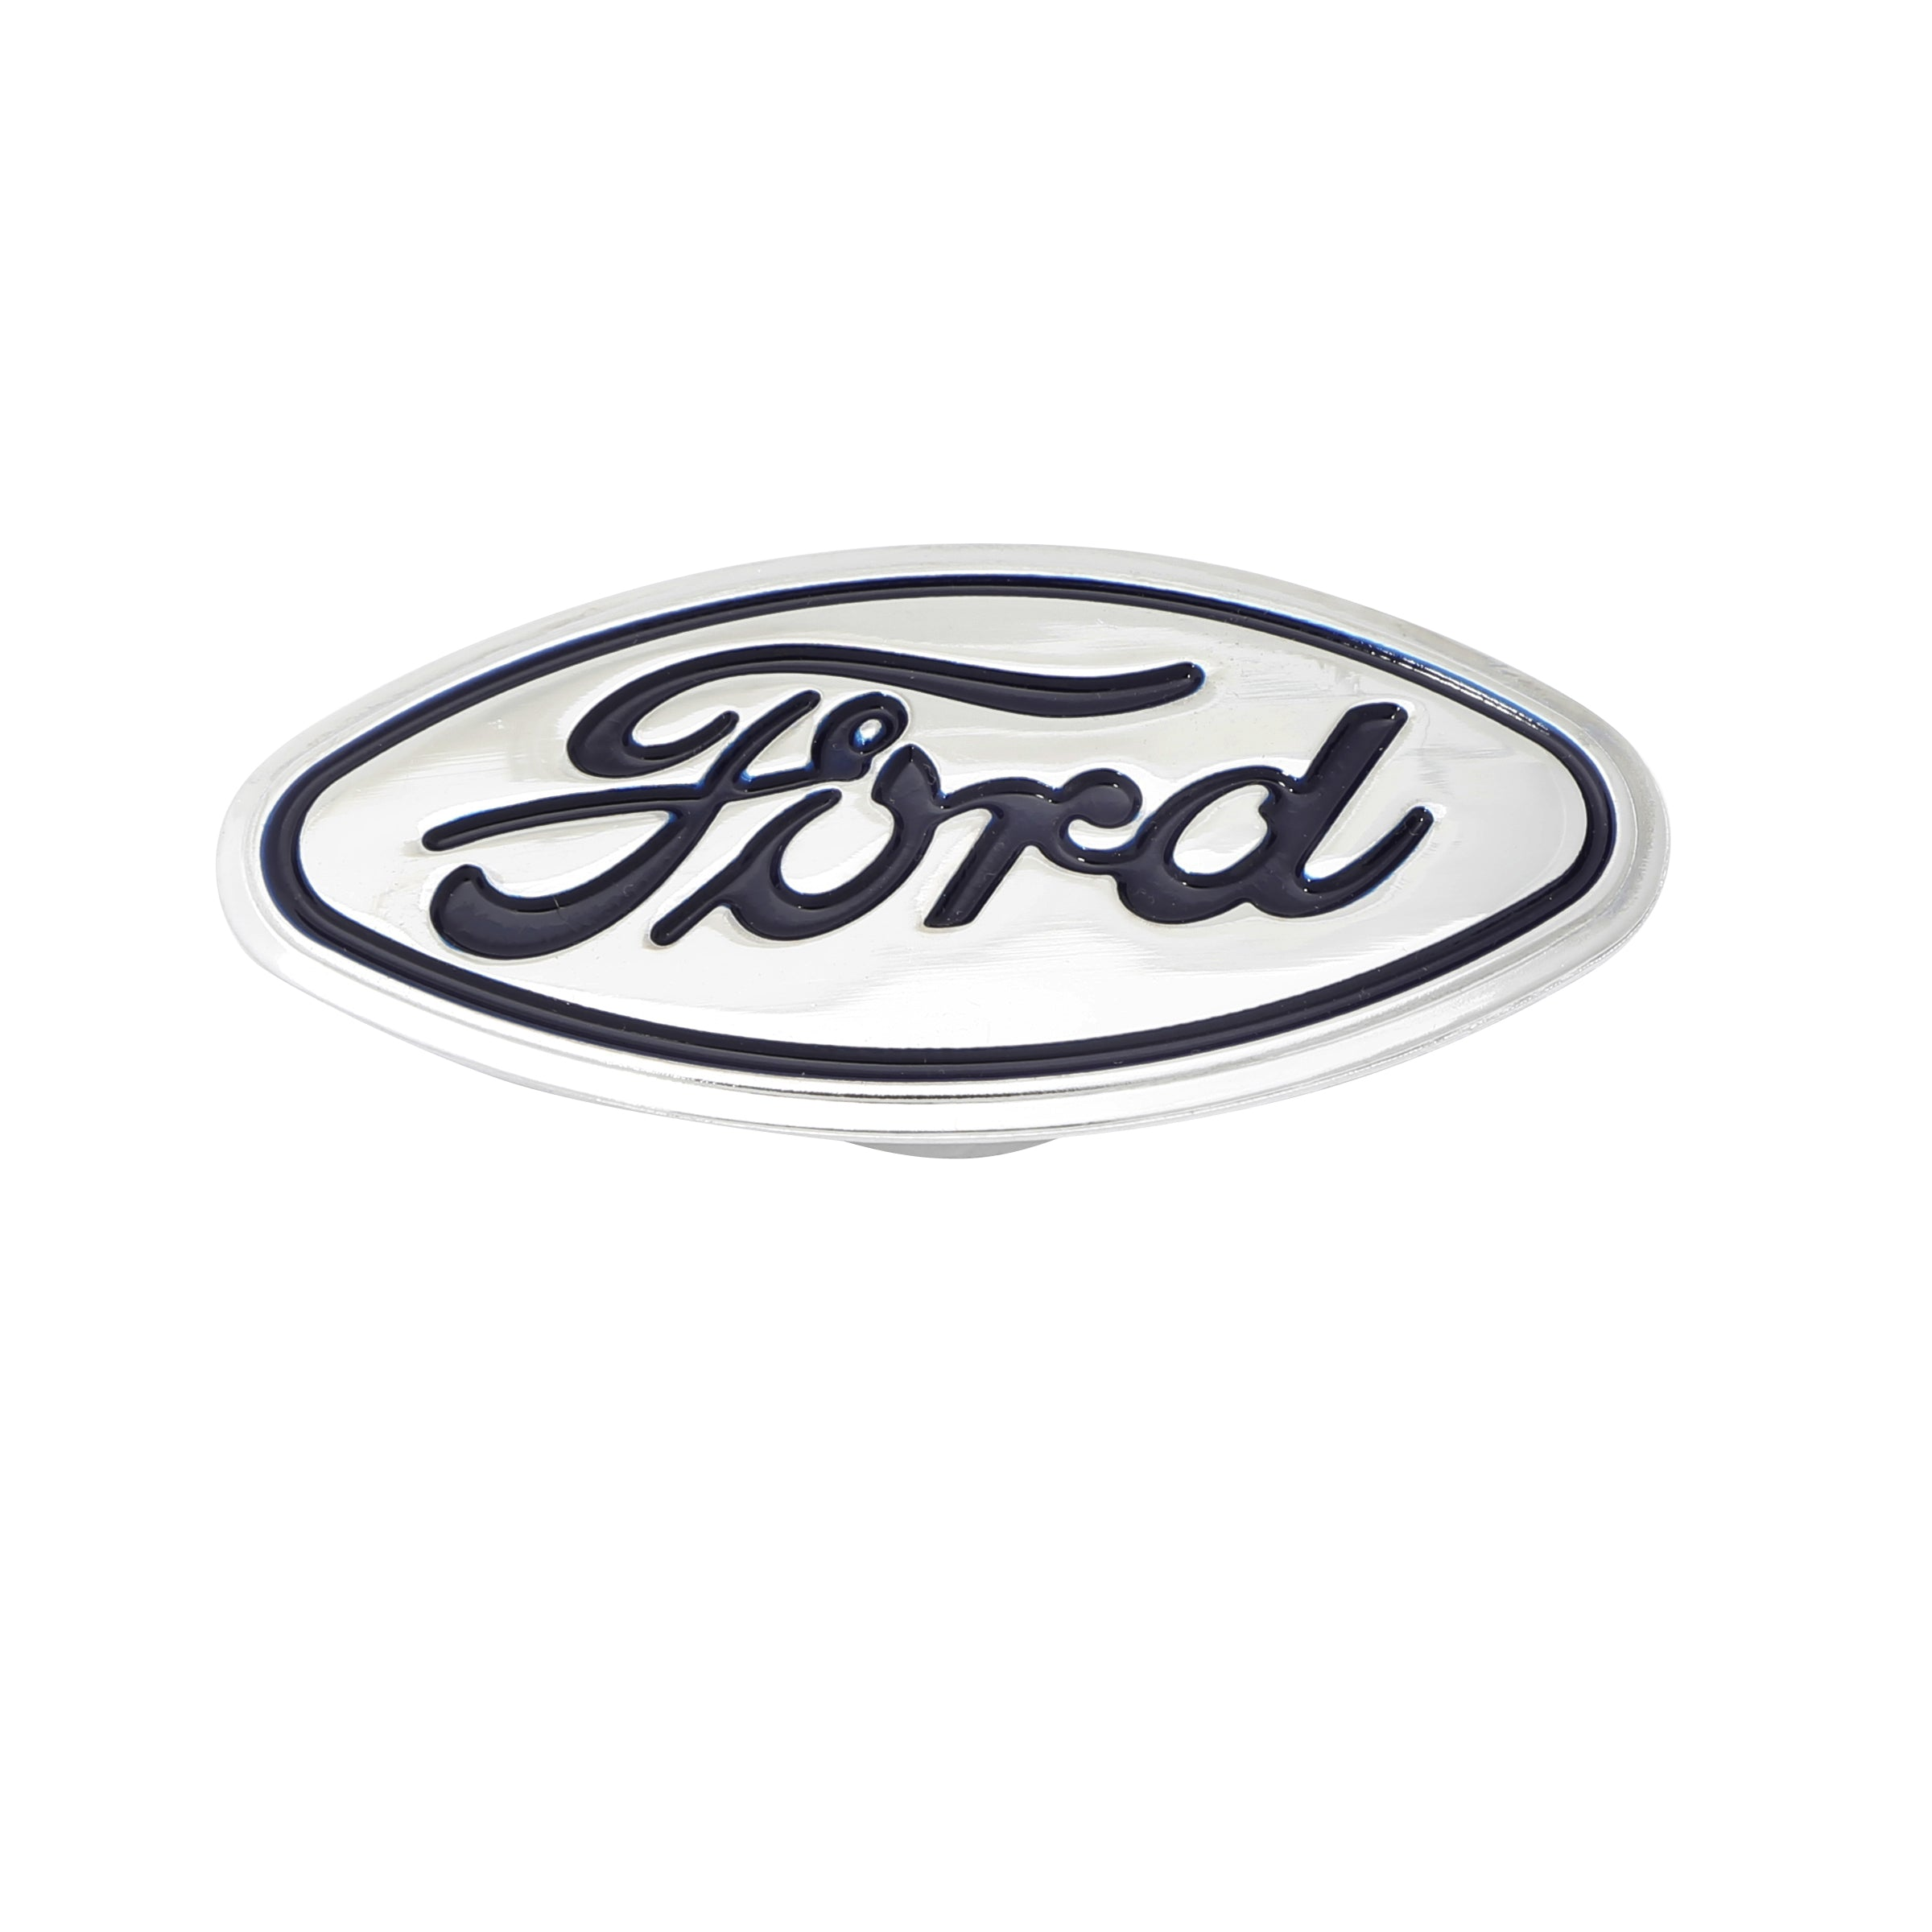 Radiator Shell Emblem • 1931 Model A Ford